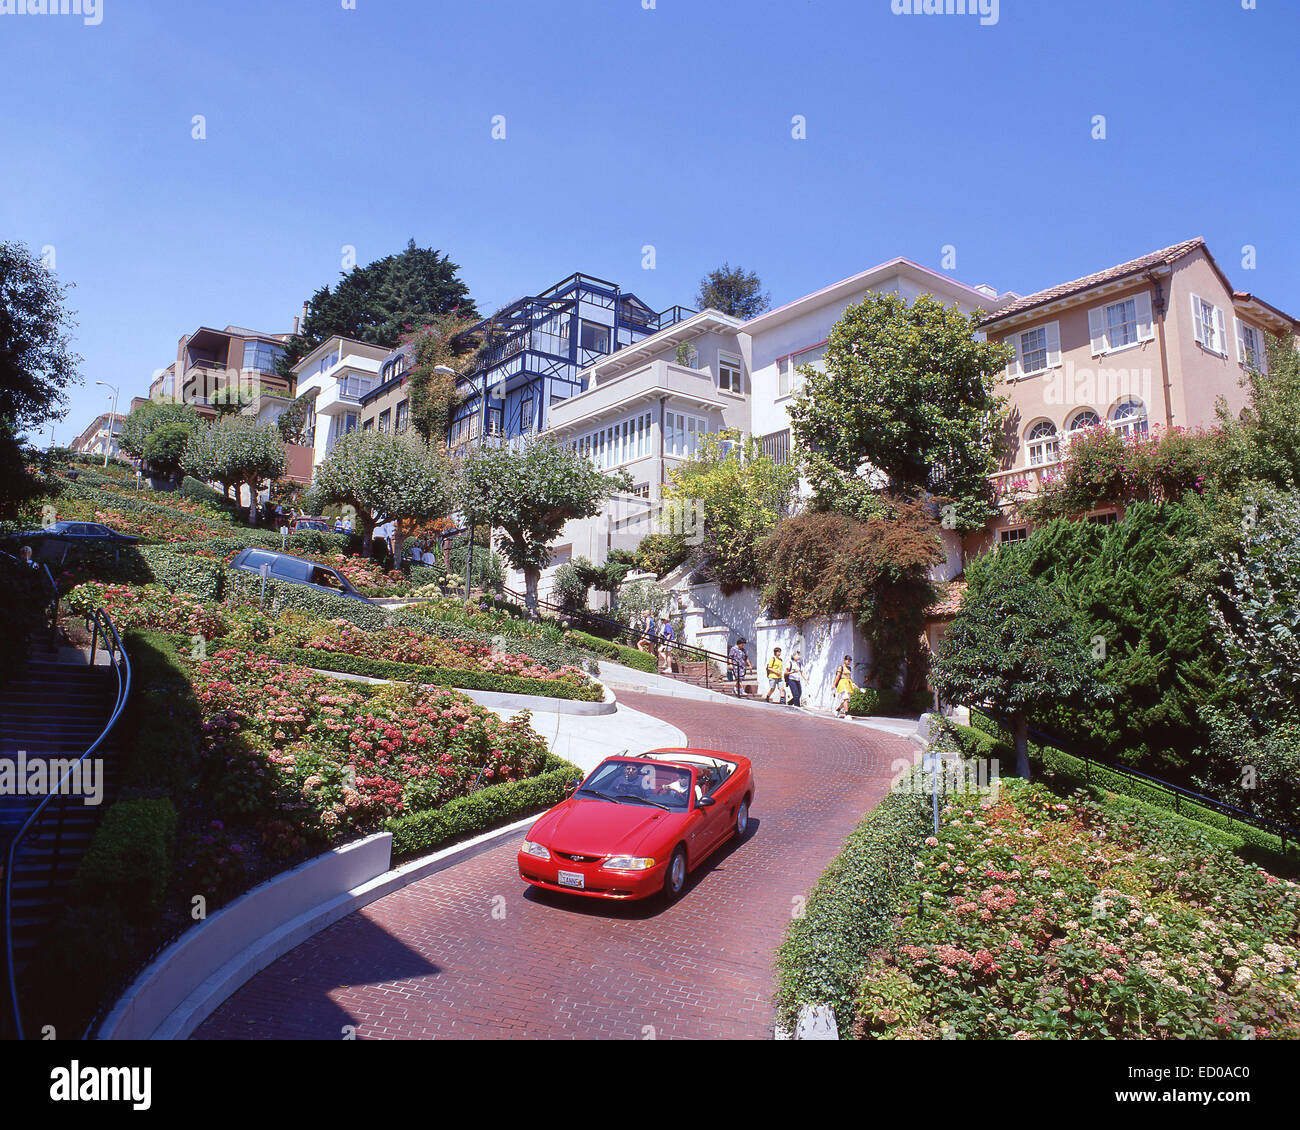 Lombard Street (crookedest street in the world), Russian Hill, San Francisco, California, United States of America - Stock Image